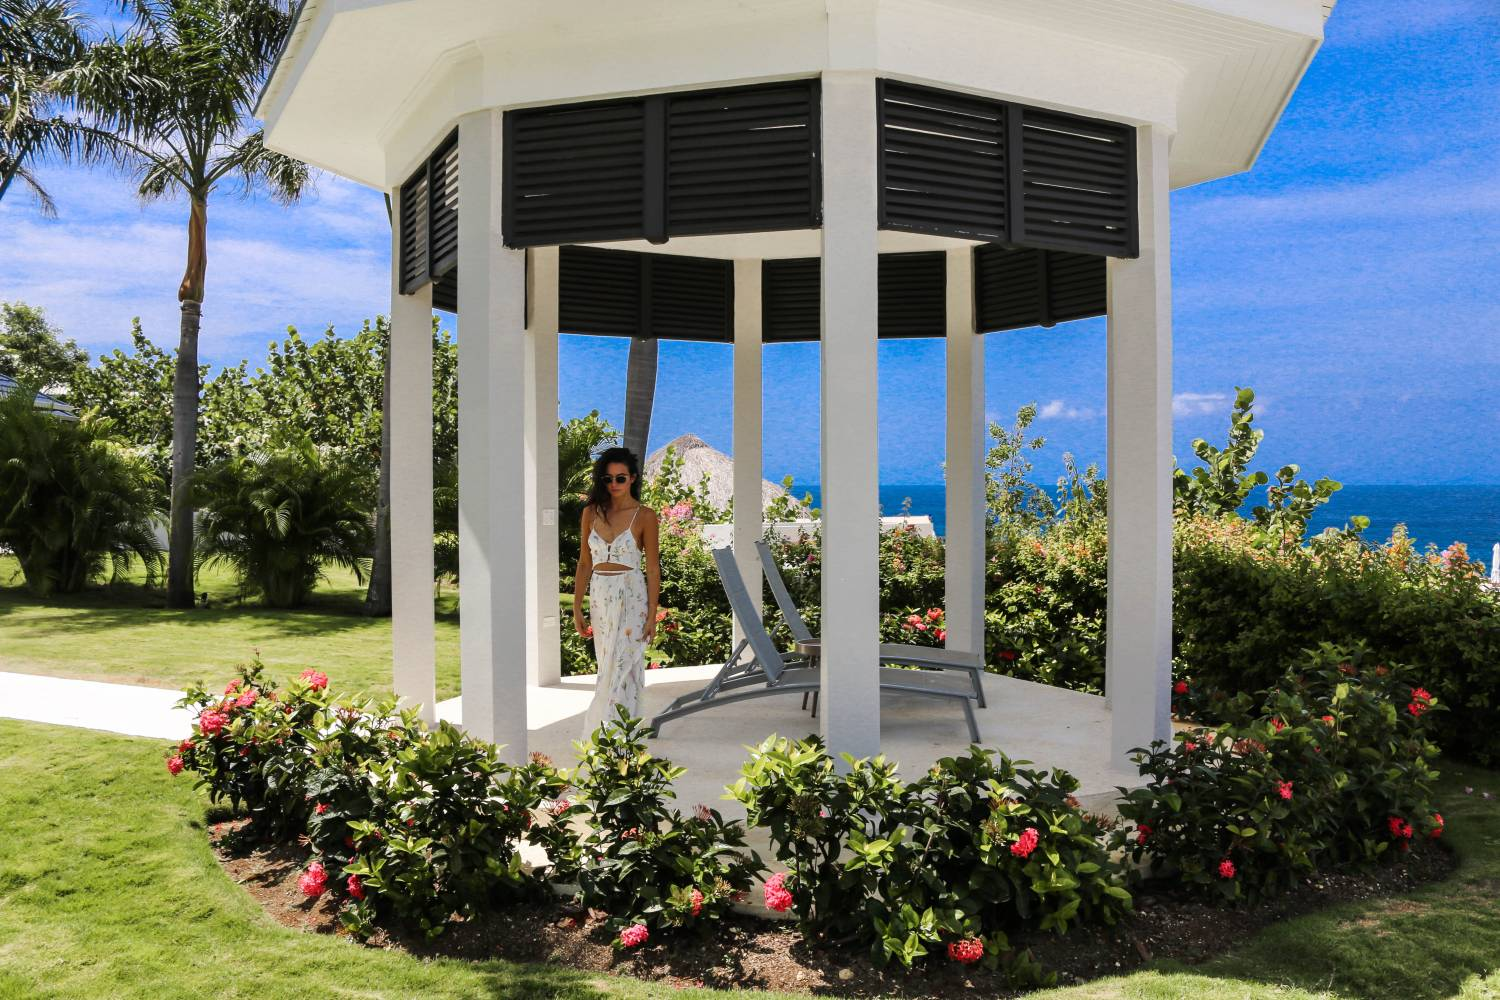 Jamaica Travel Blog - The Cliff Hotel Jamaica